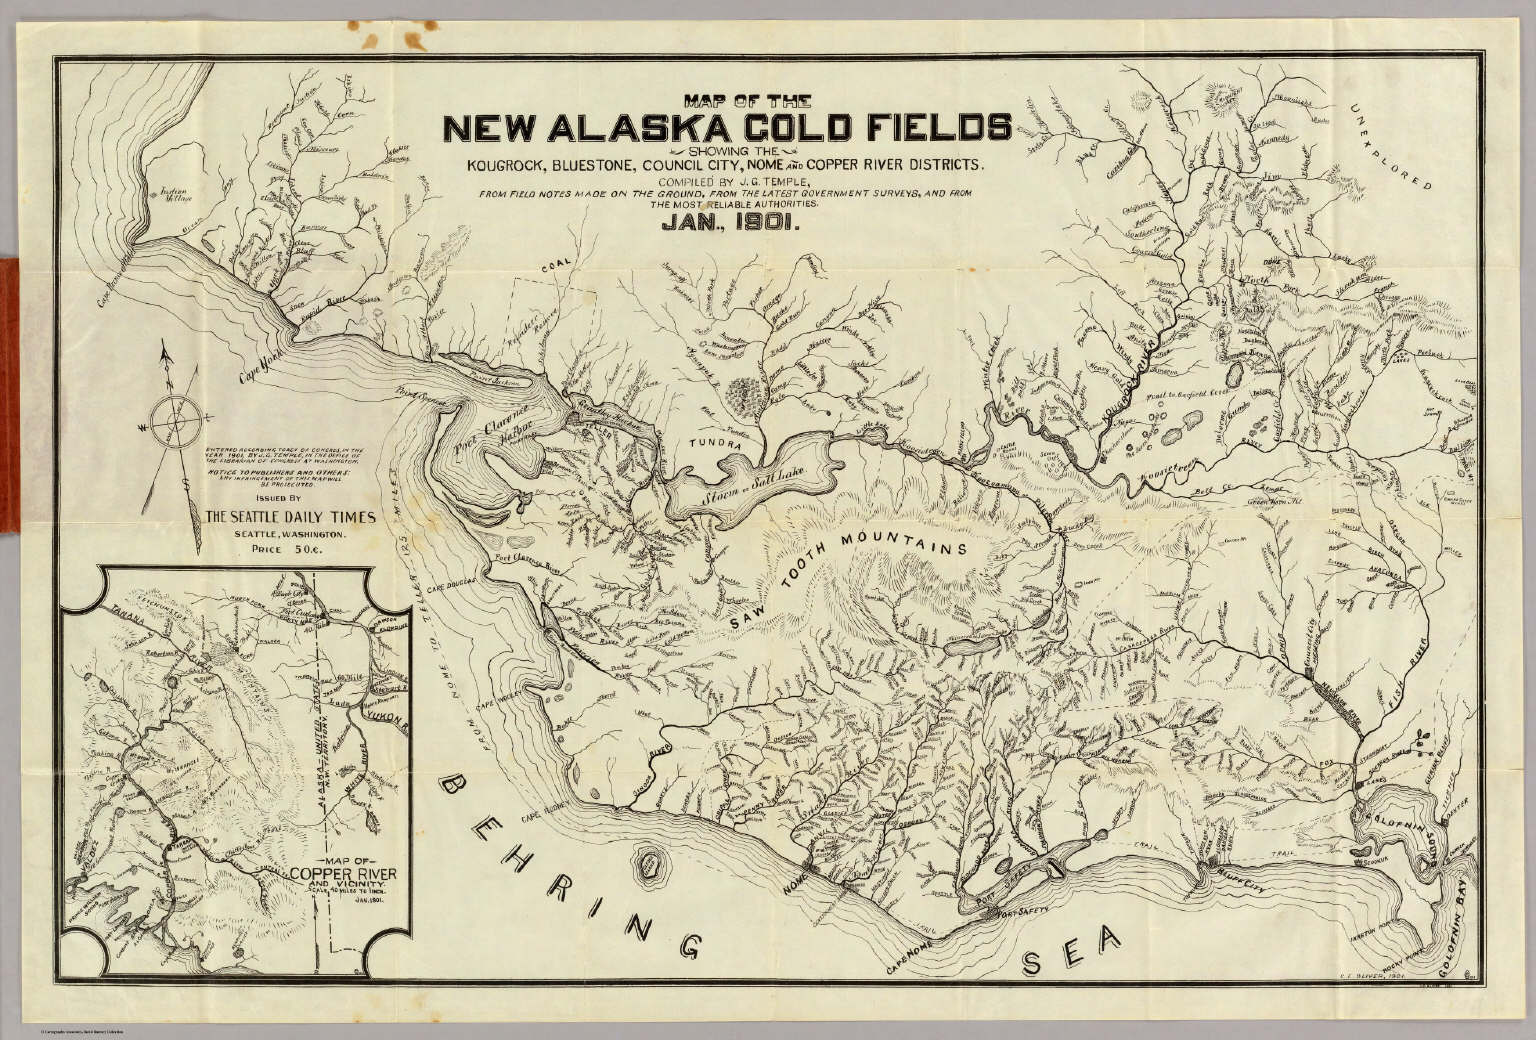 Map Of The New Alaska Gold Fields. / Temple, J.G. / 1901 Gold Map on london's map, around the world map, quartz crystal map, true map, crazy world map, iron mining map, classic map, black map, tin deposits map, original map, metallic map, diamond map, old west map, gilgal map, iron deposits map, natural earth map, blue china map, blue ocean map, tin ore map, china bubble map,